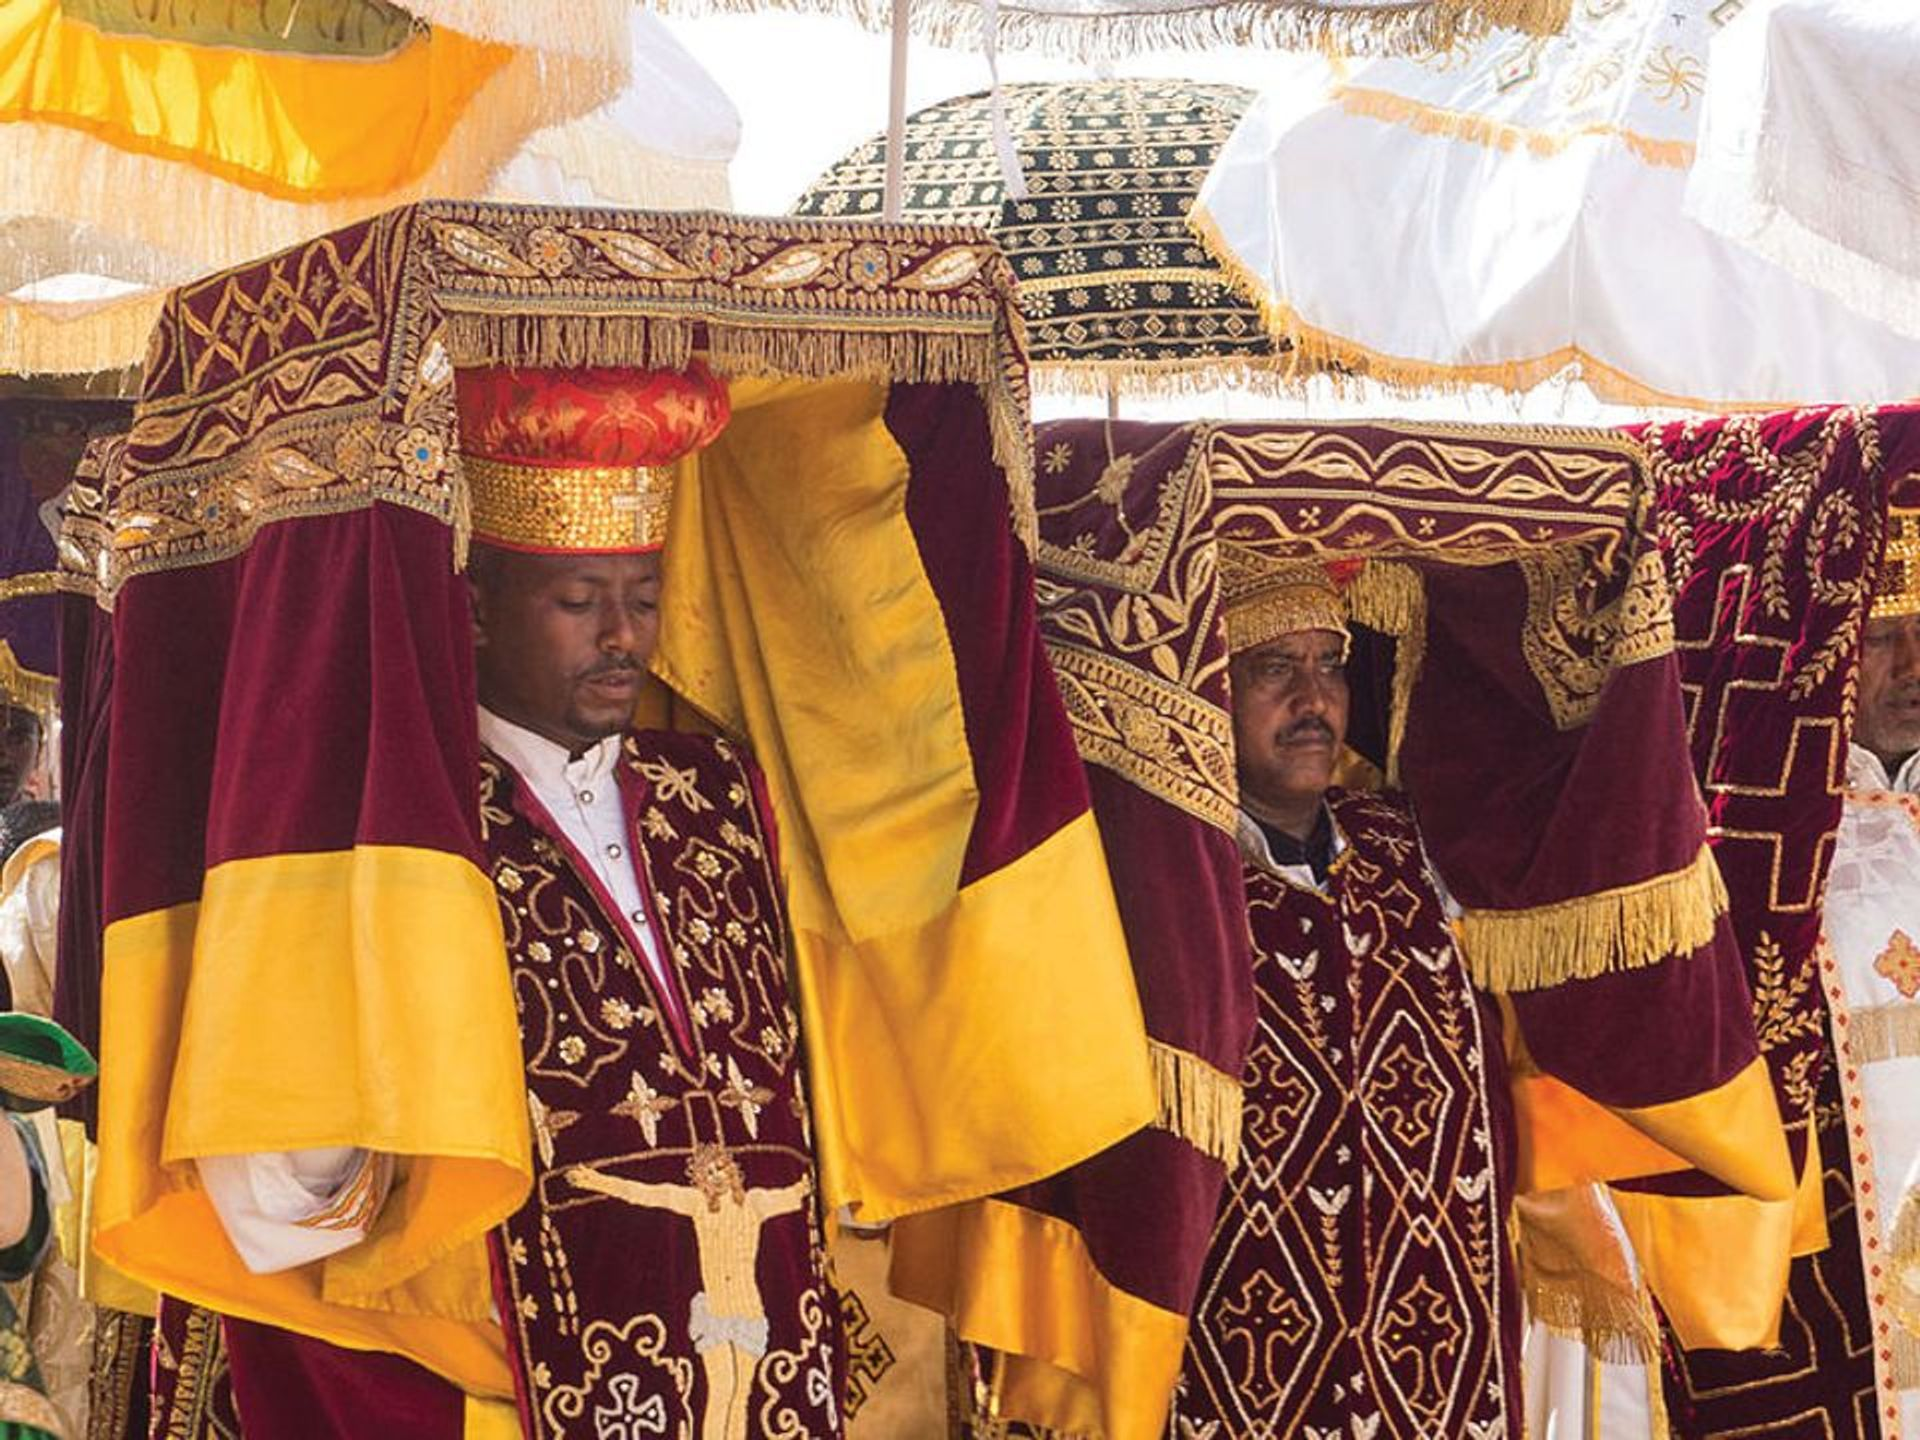 Priests in Addis Ababa carrying covered tabots on their heads during a celebration of the Epiphany © Jean Rebiffé